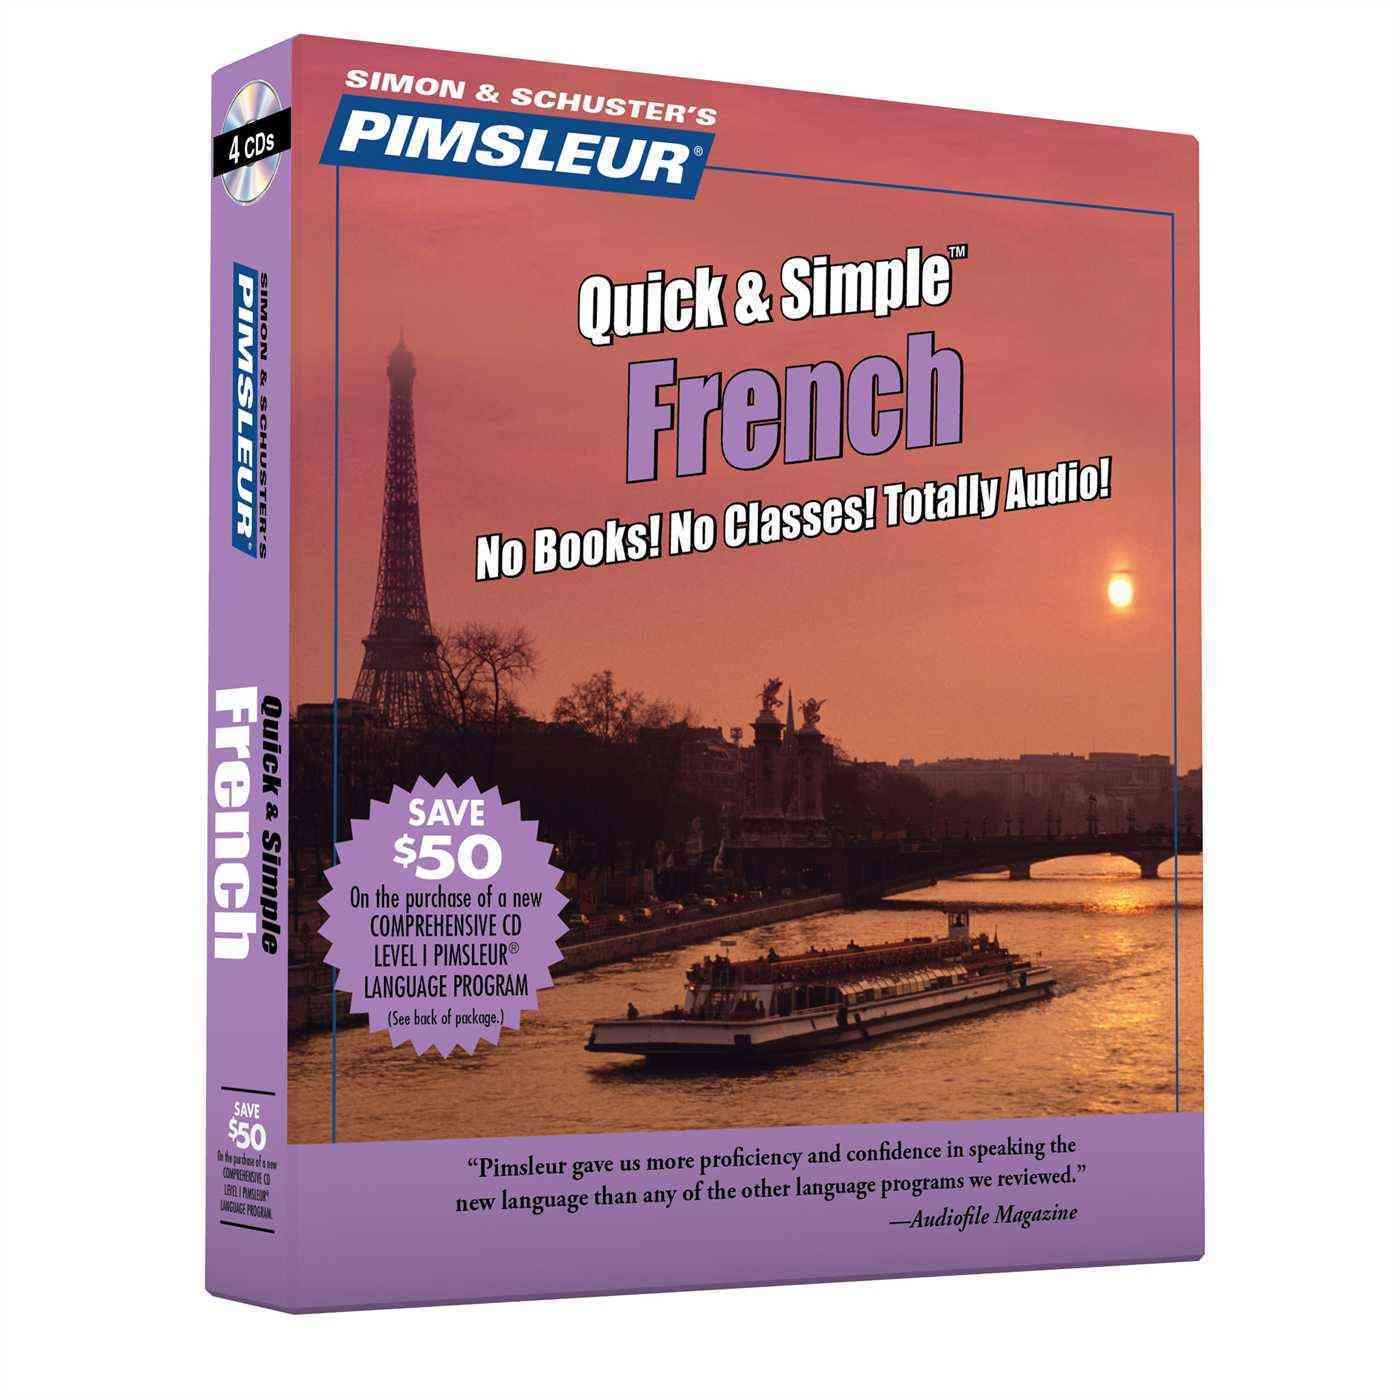 Pimsleur Quick & Simple French: Euro Edition (CD-Audio)